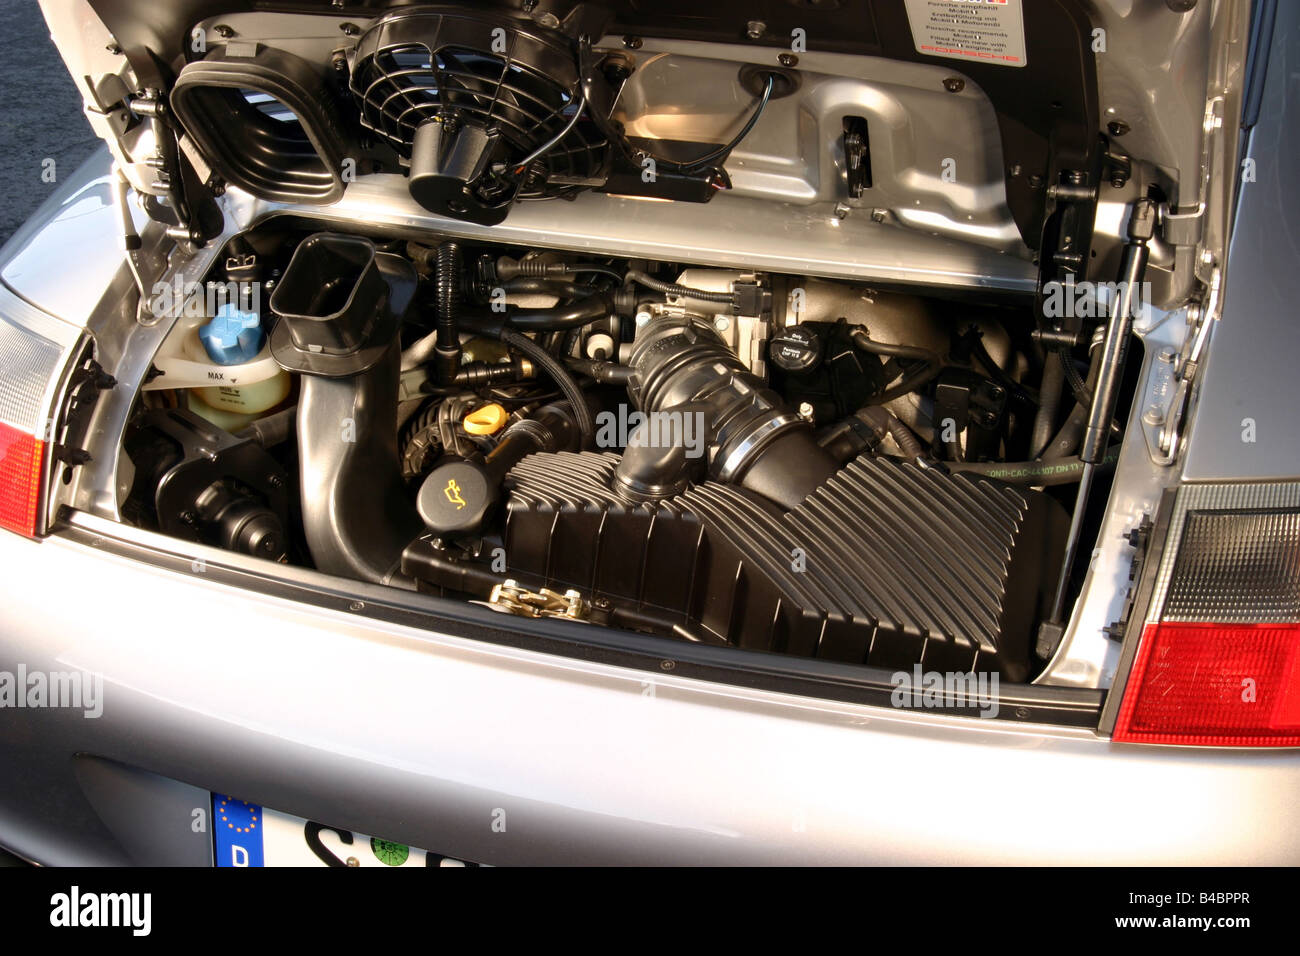 porsche 911 engine stock photos \u0026 porsche 911 engine stock 2019 porsche 911 carrera gts black 2020 porsche 911 carrera s turns out